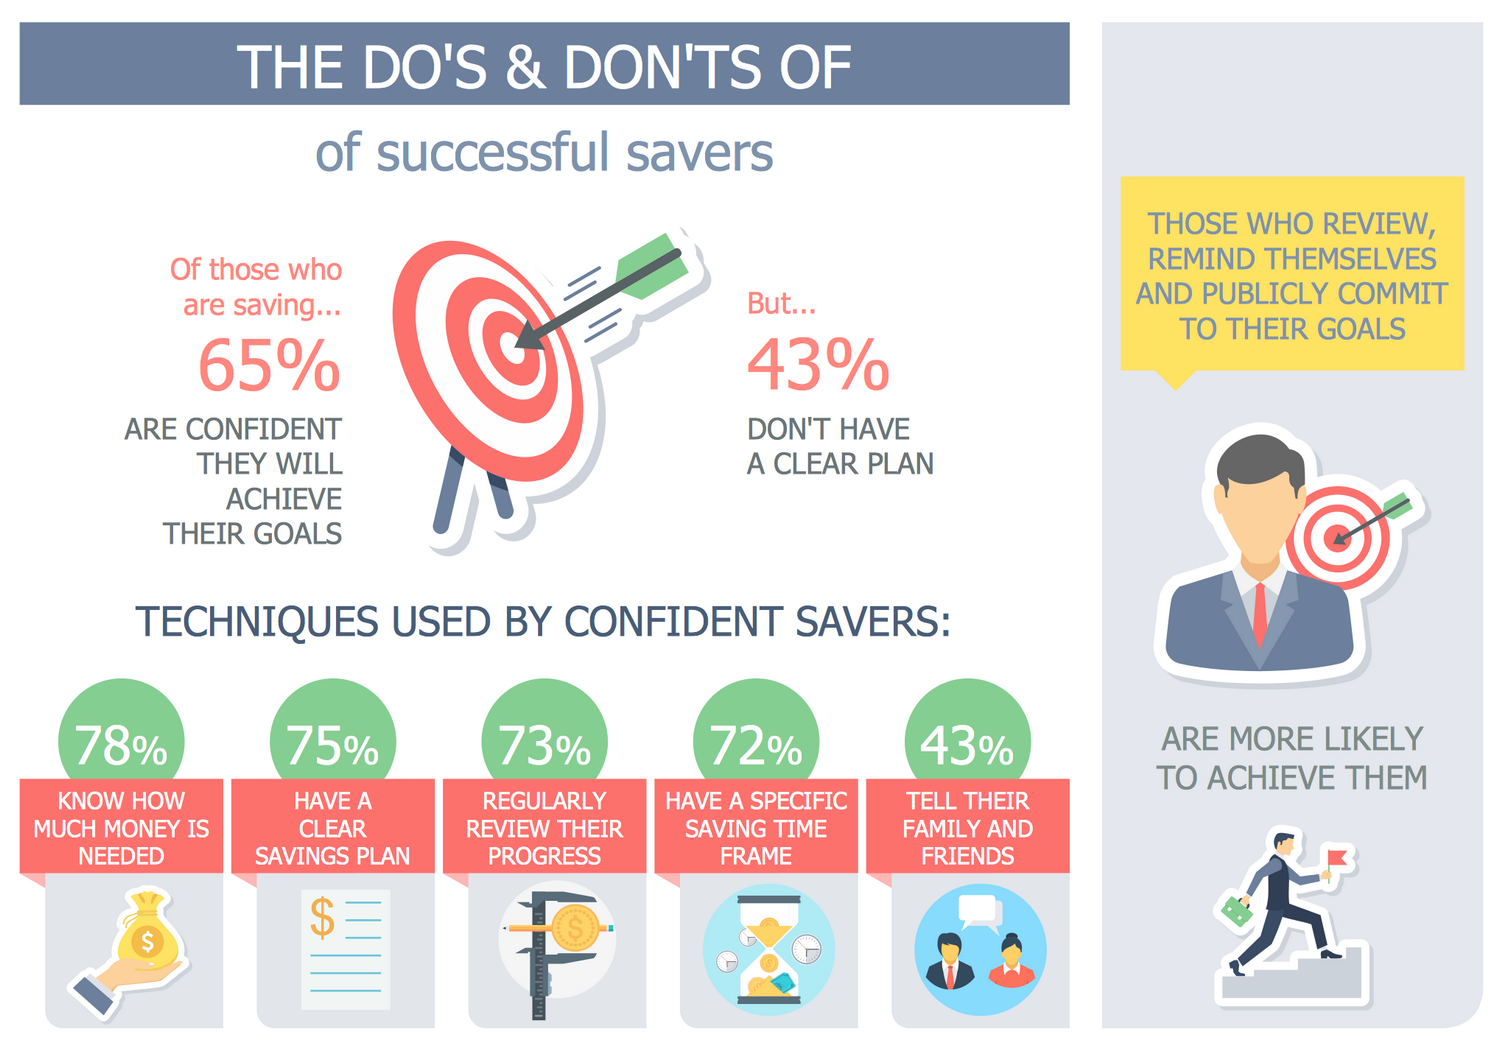 Do's and Don'ts of Successful Savers